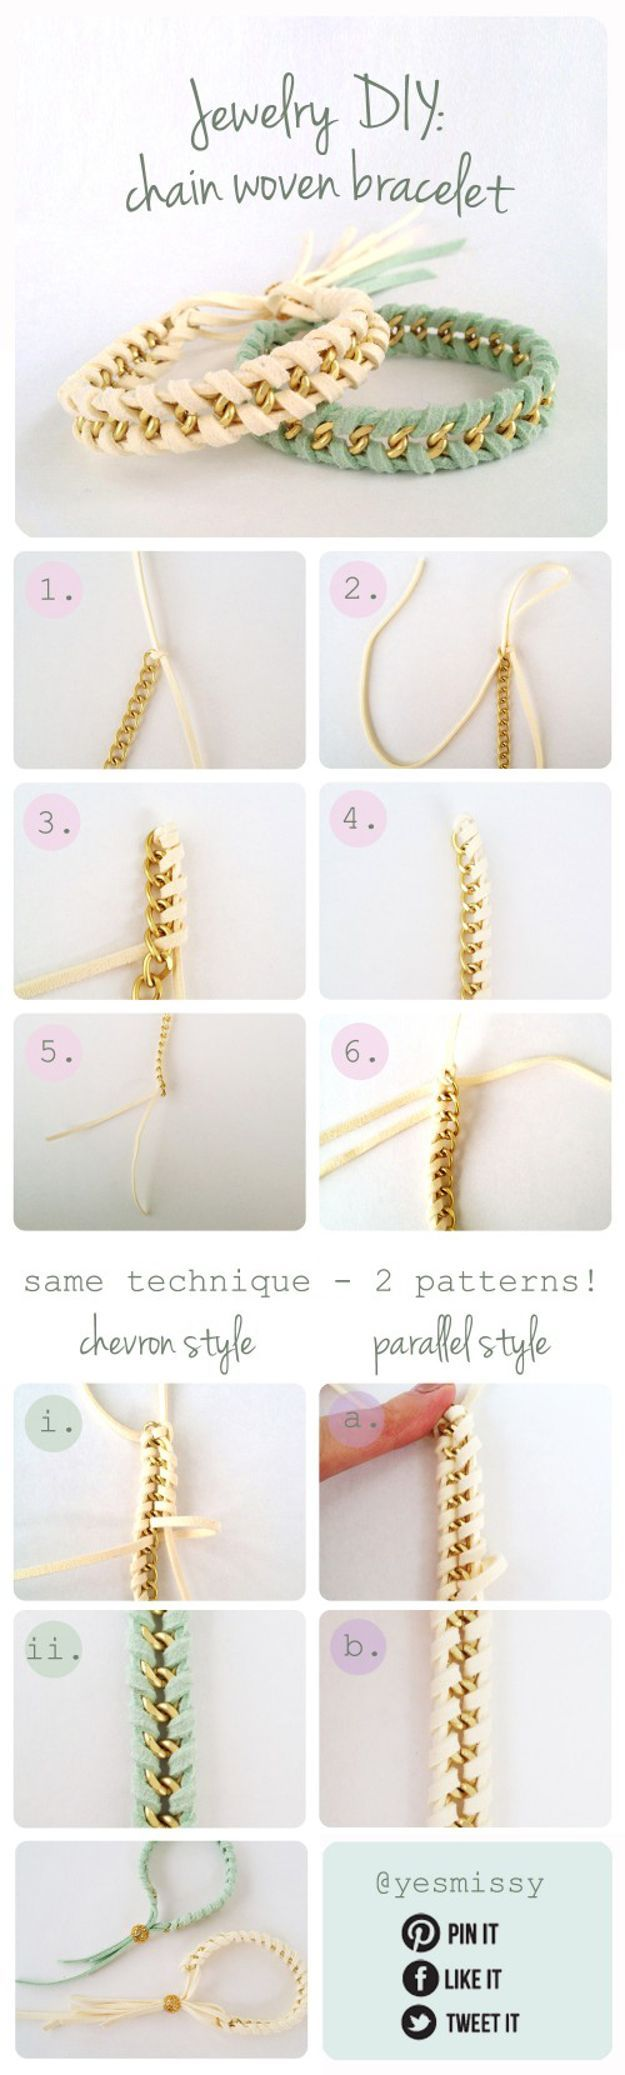 Jewelry Making! DIY Braided Bracelets | http://diyready.com/4-wire-jewelry-making-techniques-diy-bracelets/